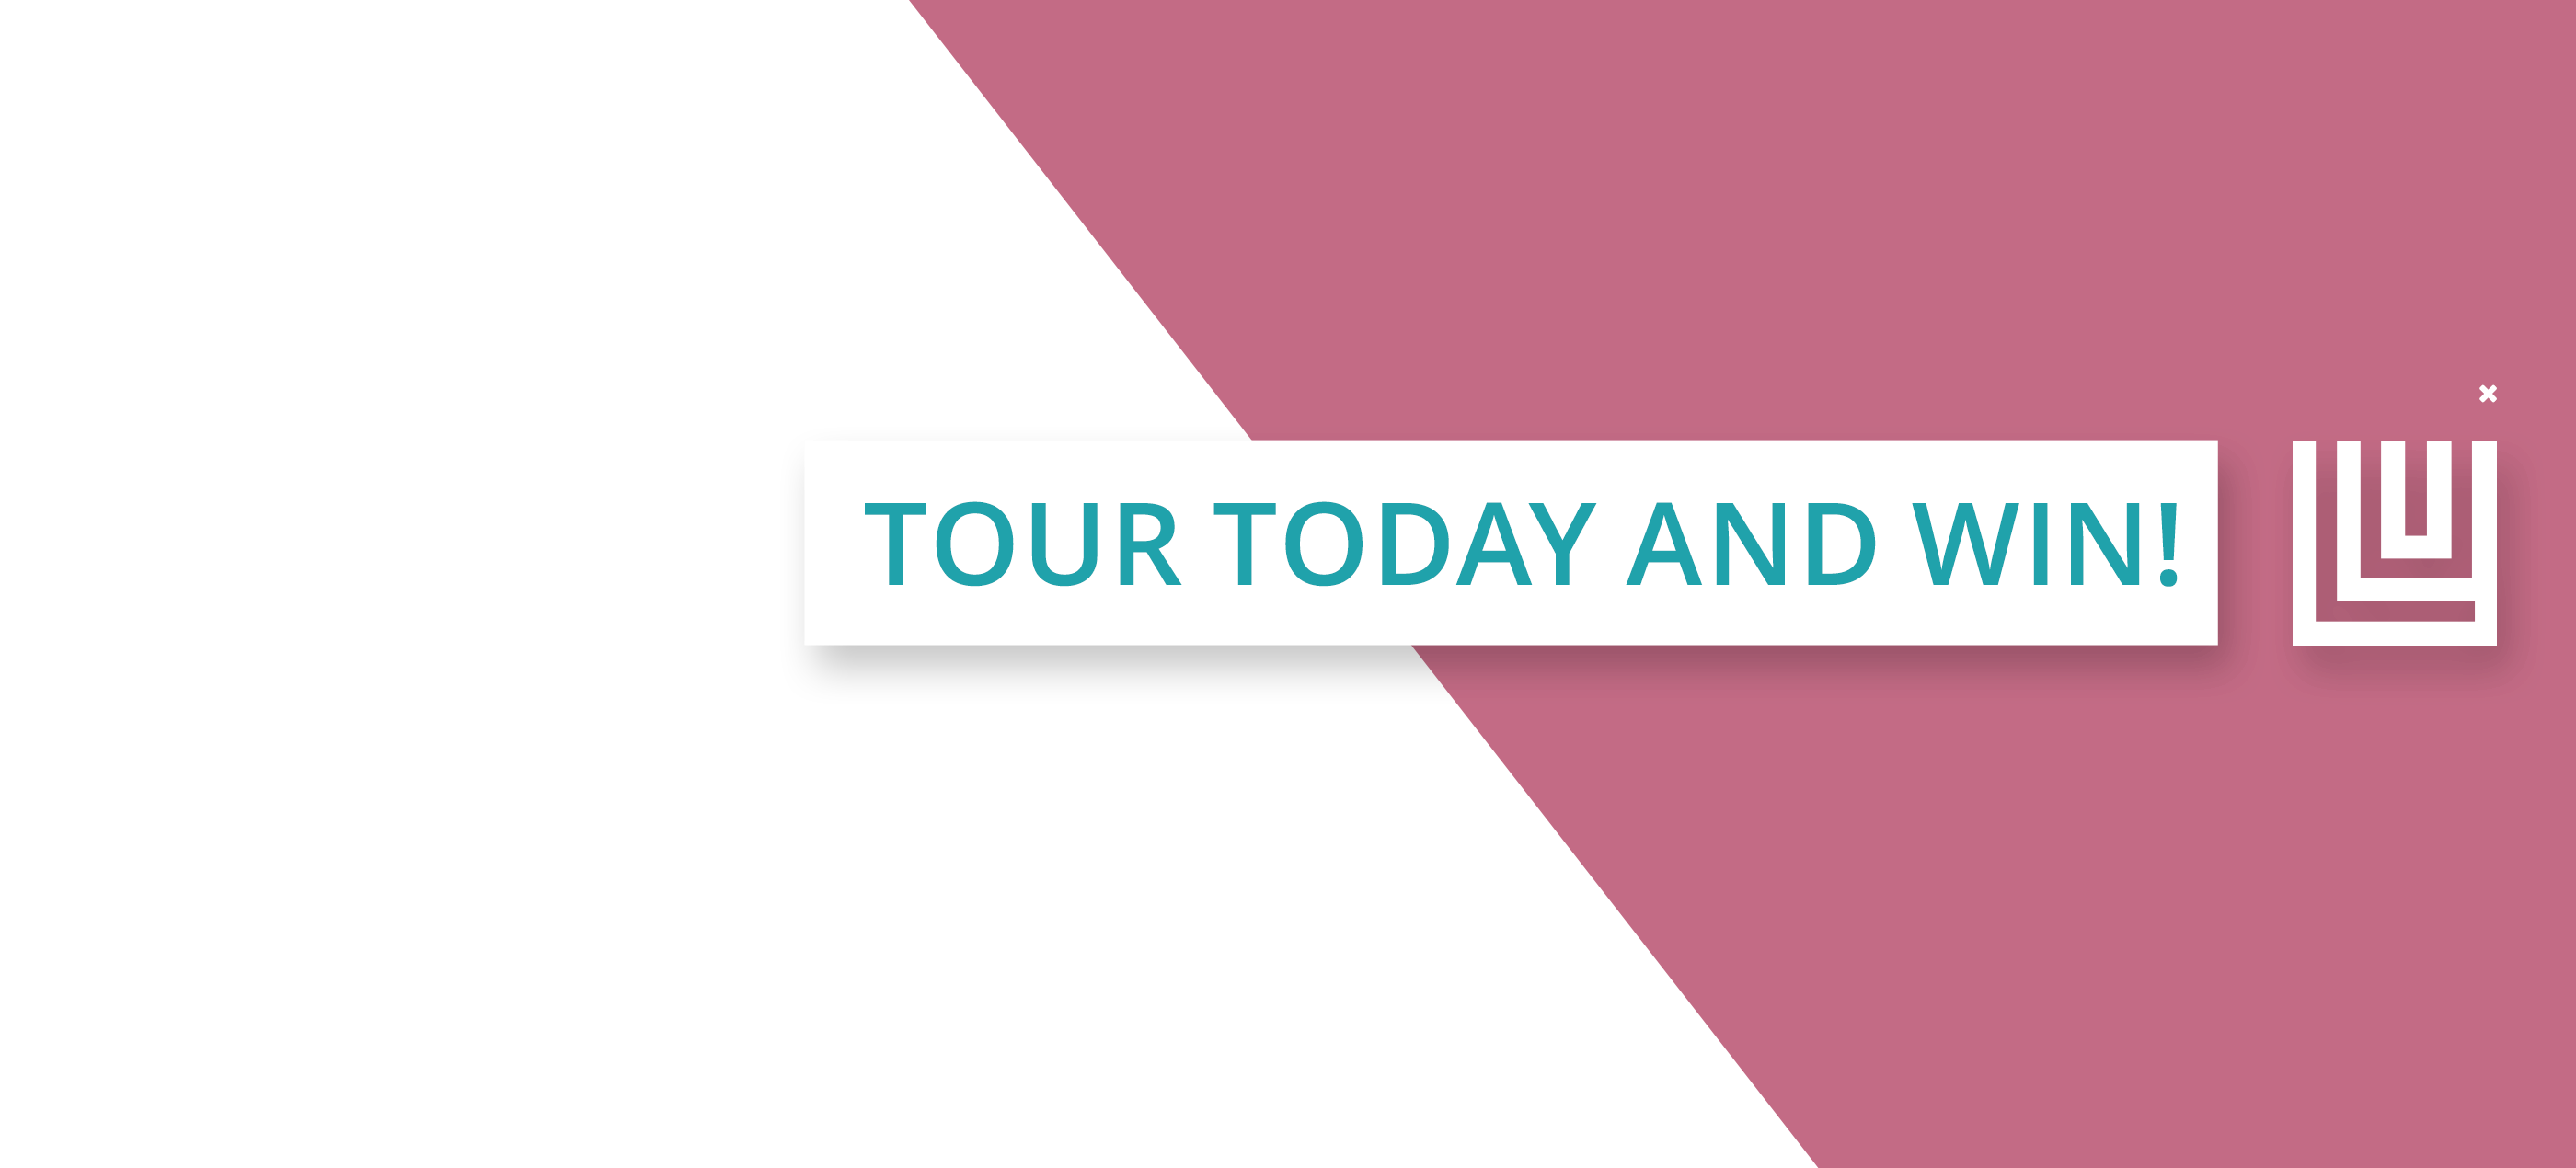 Tour Today and Win!